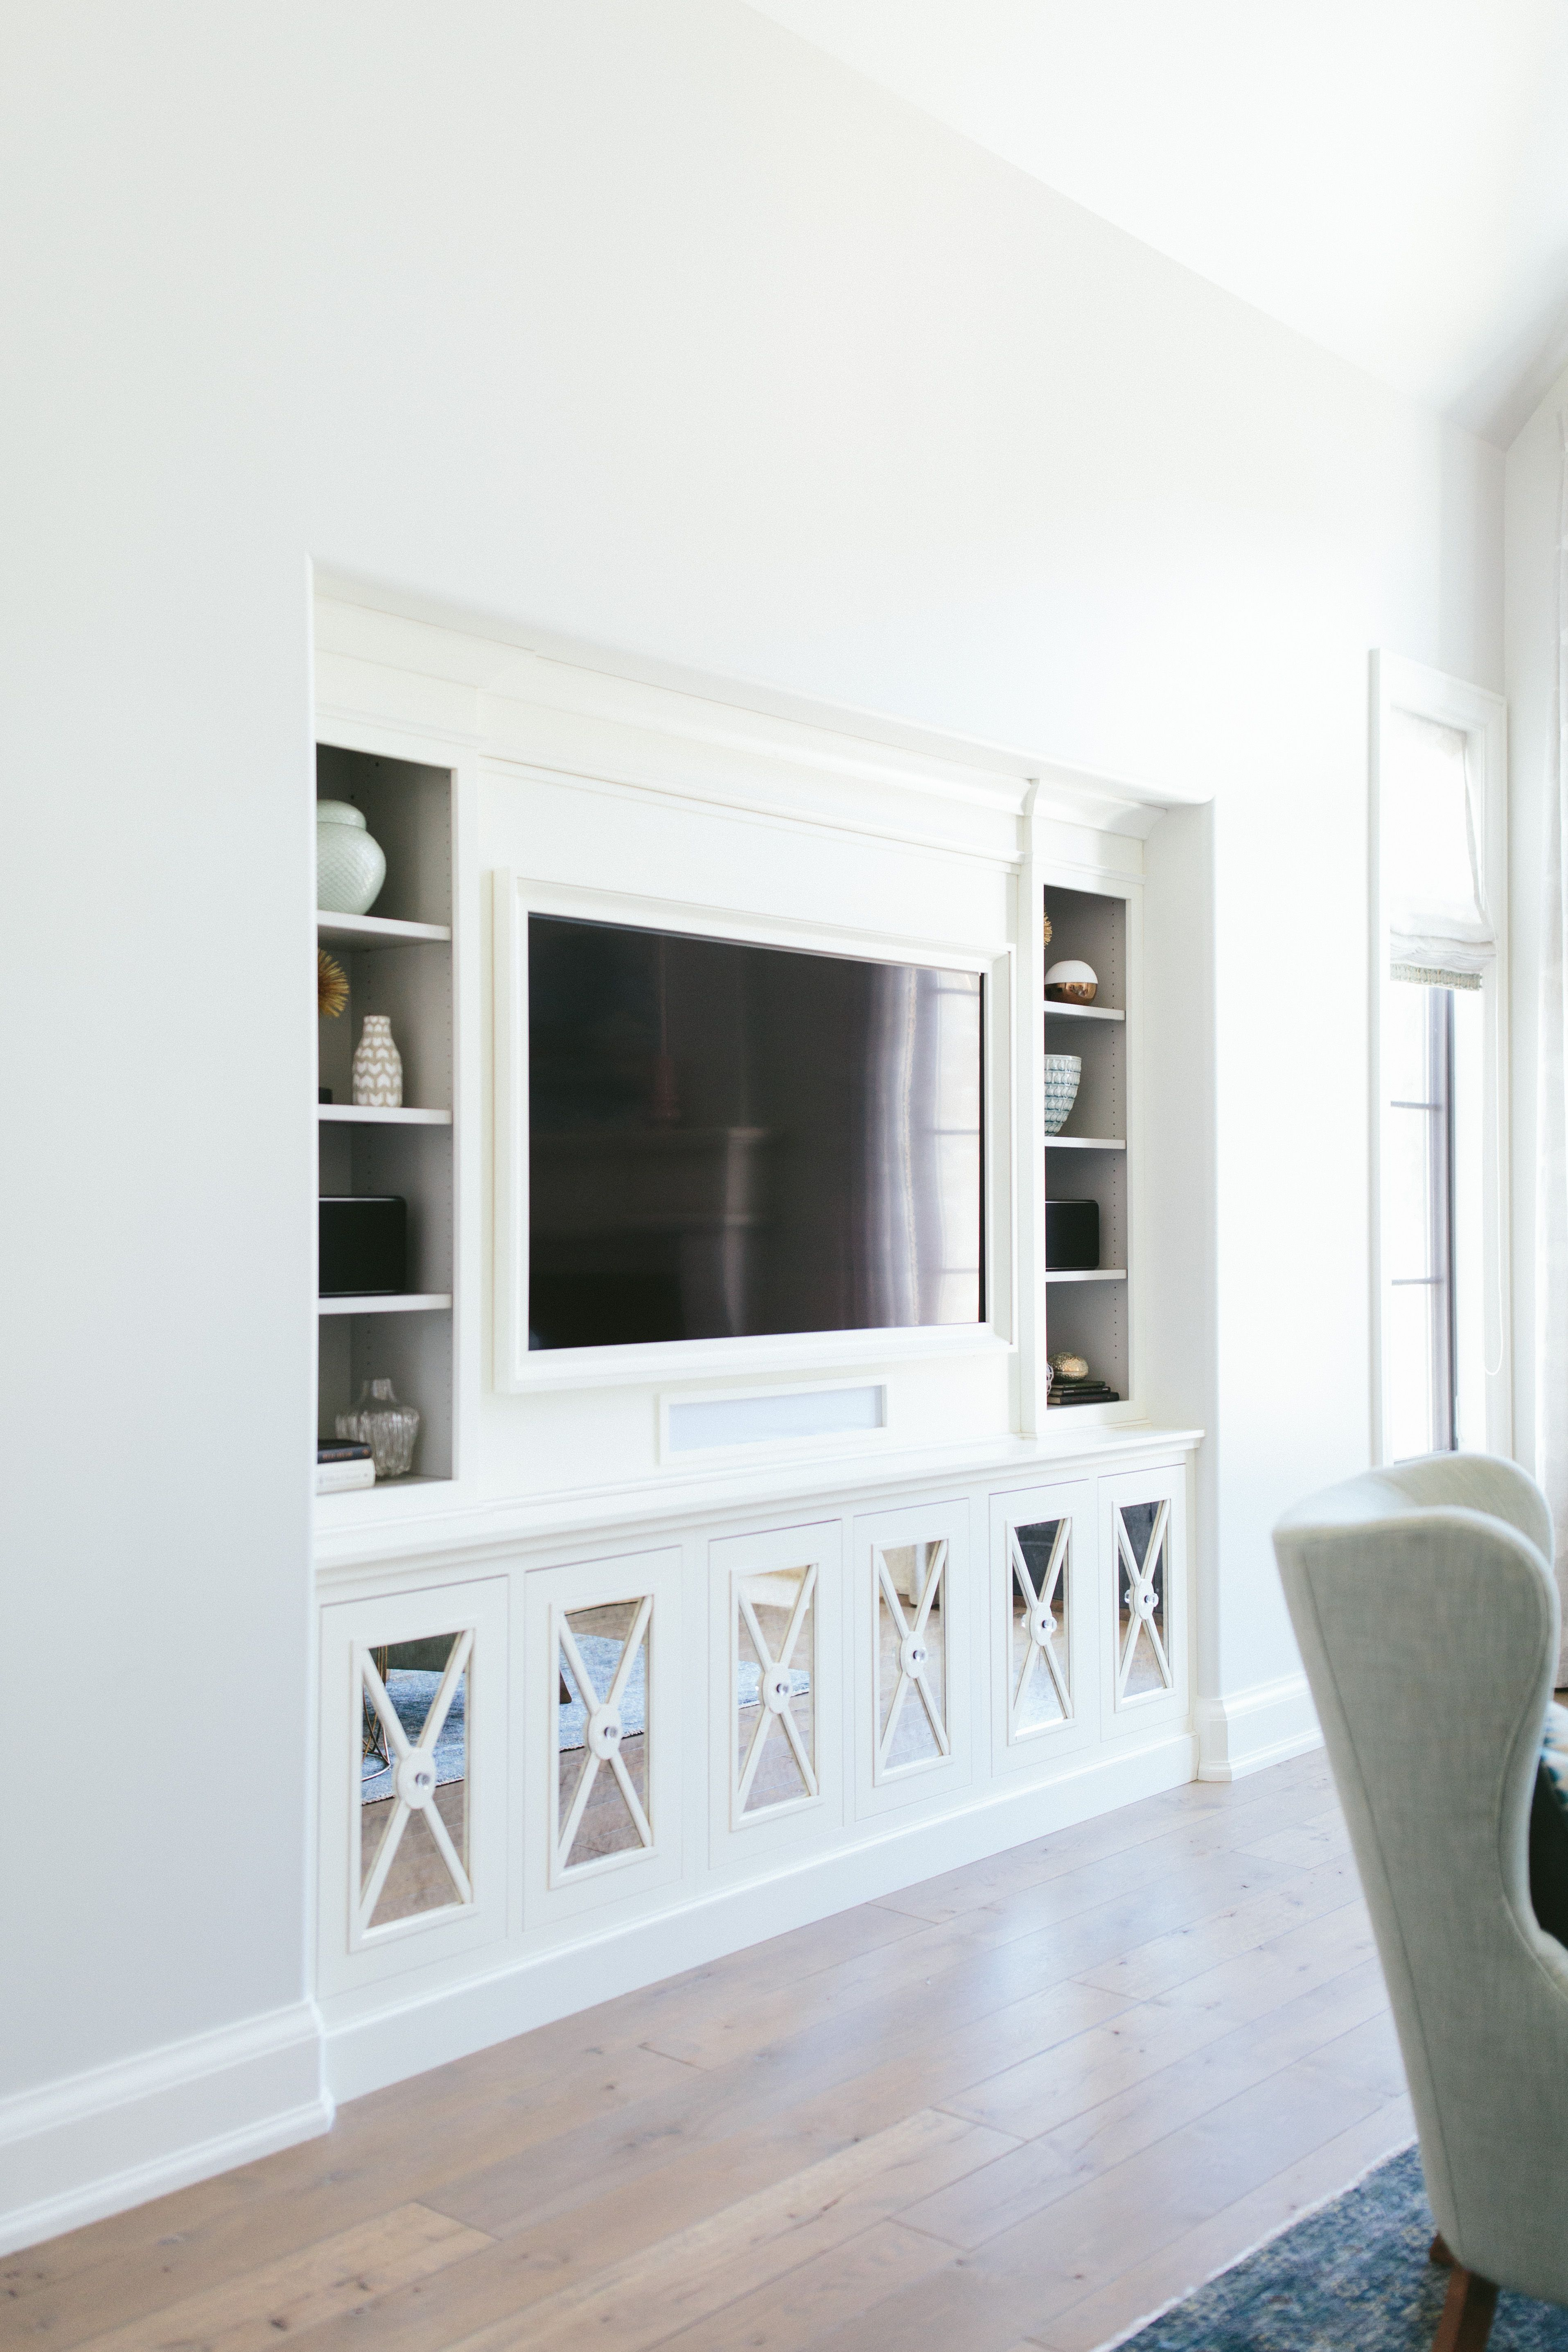 Living room built ins architectural feature on cabinets